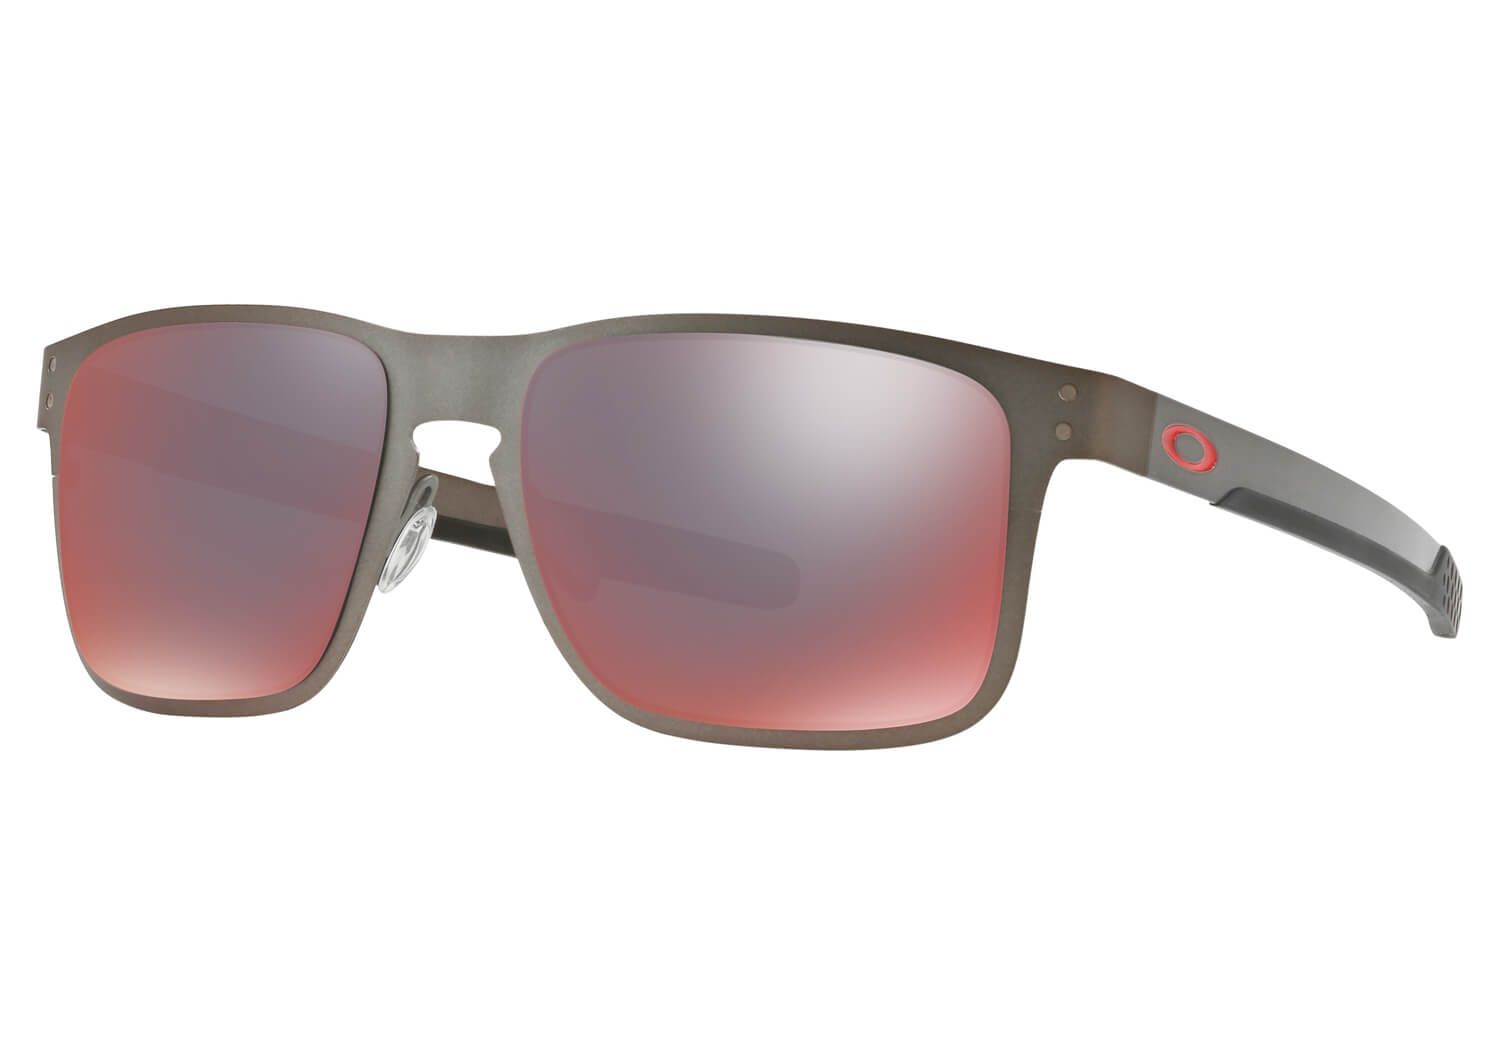 1c5d8623b1 ... discount code for oakley holbrook metal prescription sunglasses 0f16f  701cc